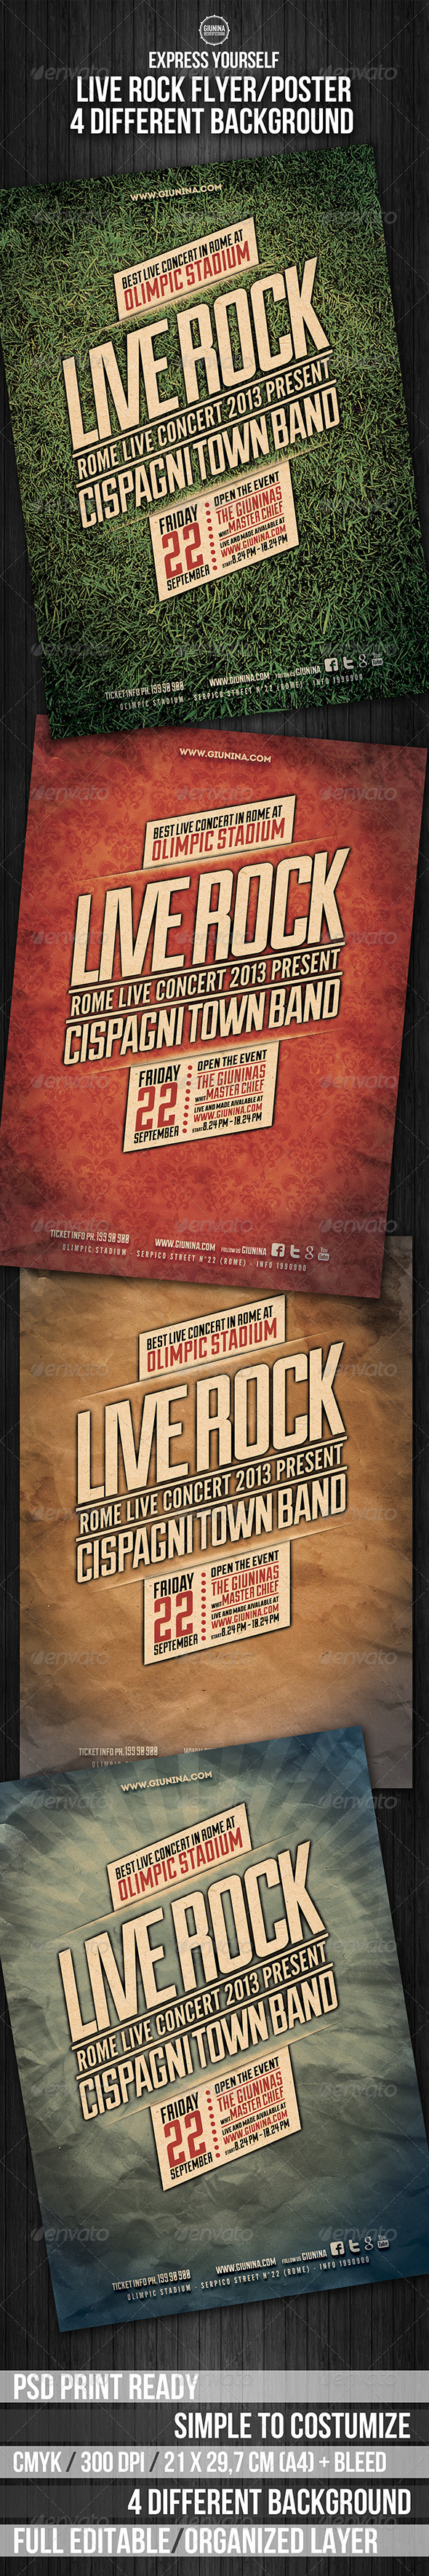 GraphicRiver Live Rock Flyer Poster 5532549